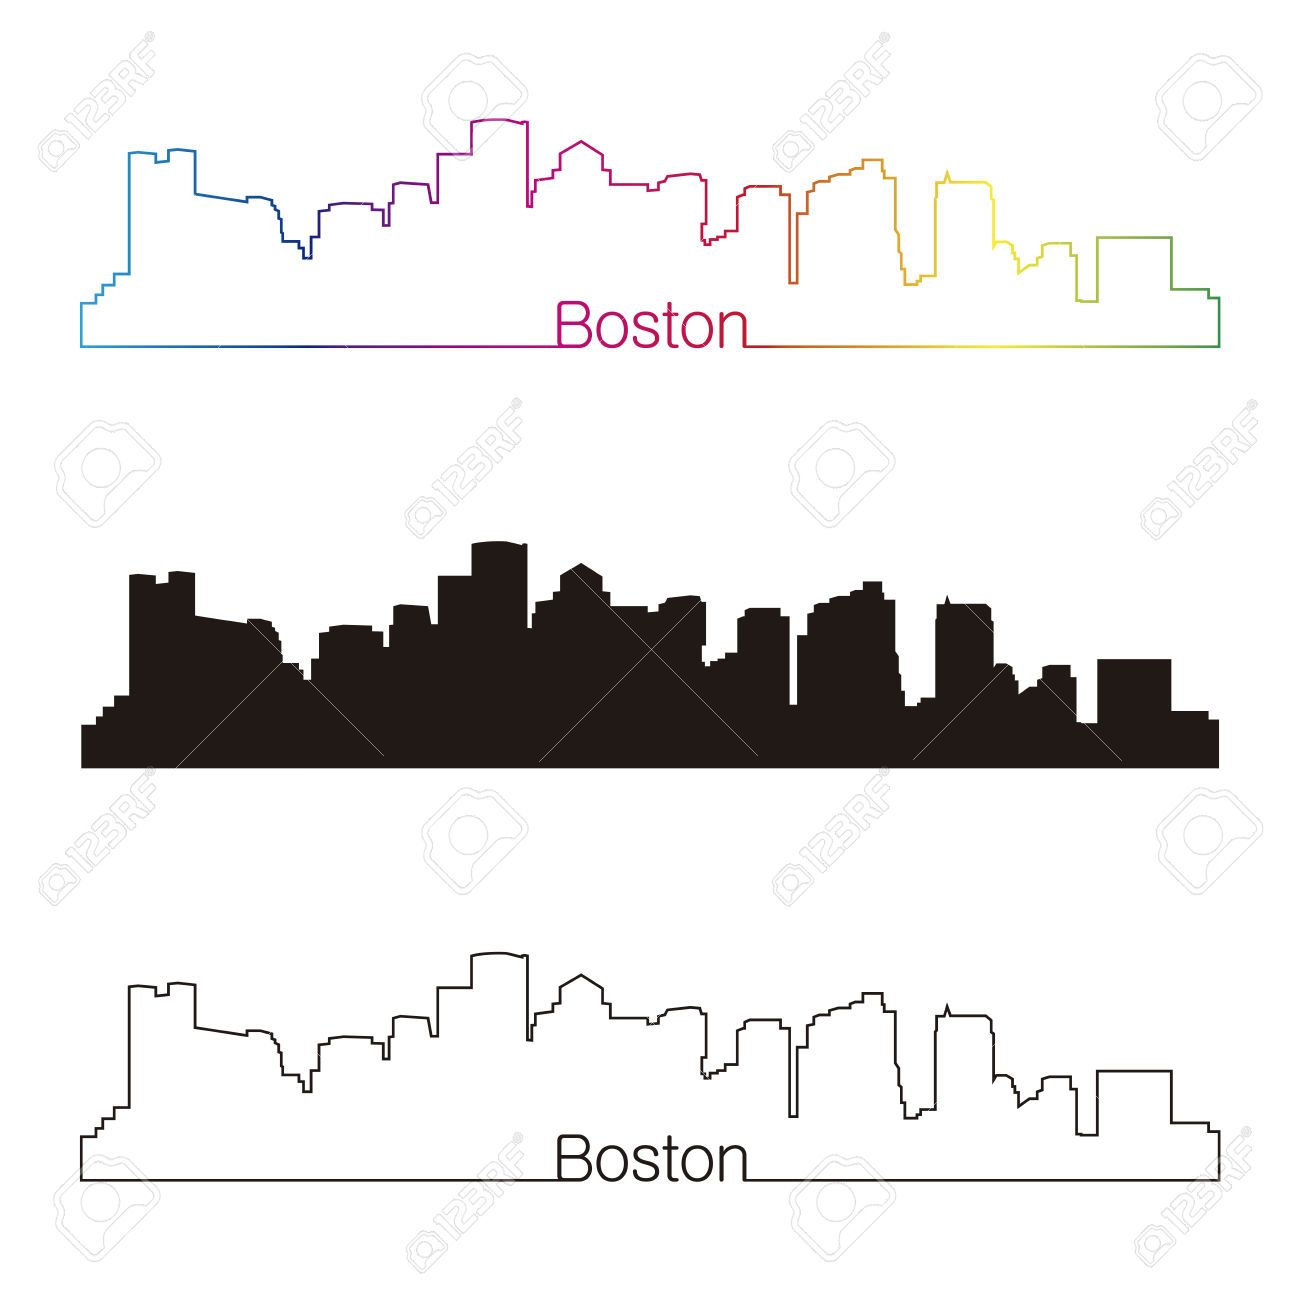 boston skyline silhouette vector at getdrawings com free for rh getdrawings com